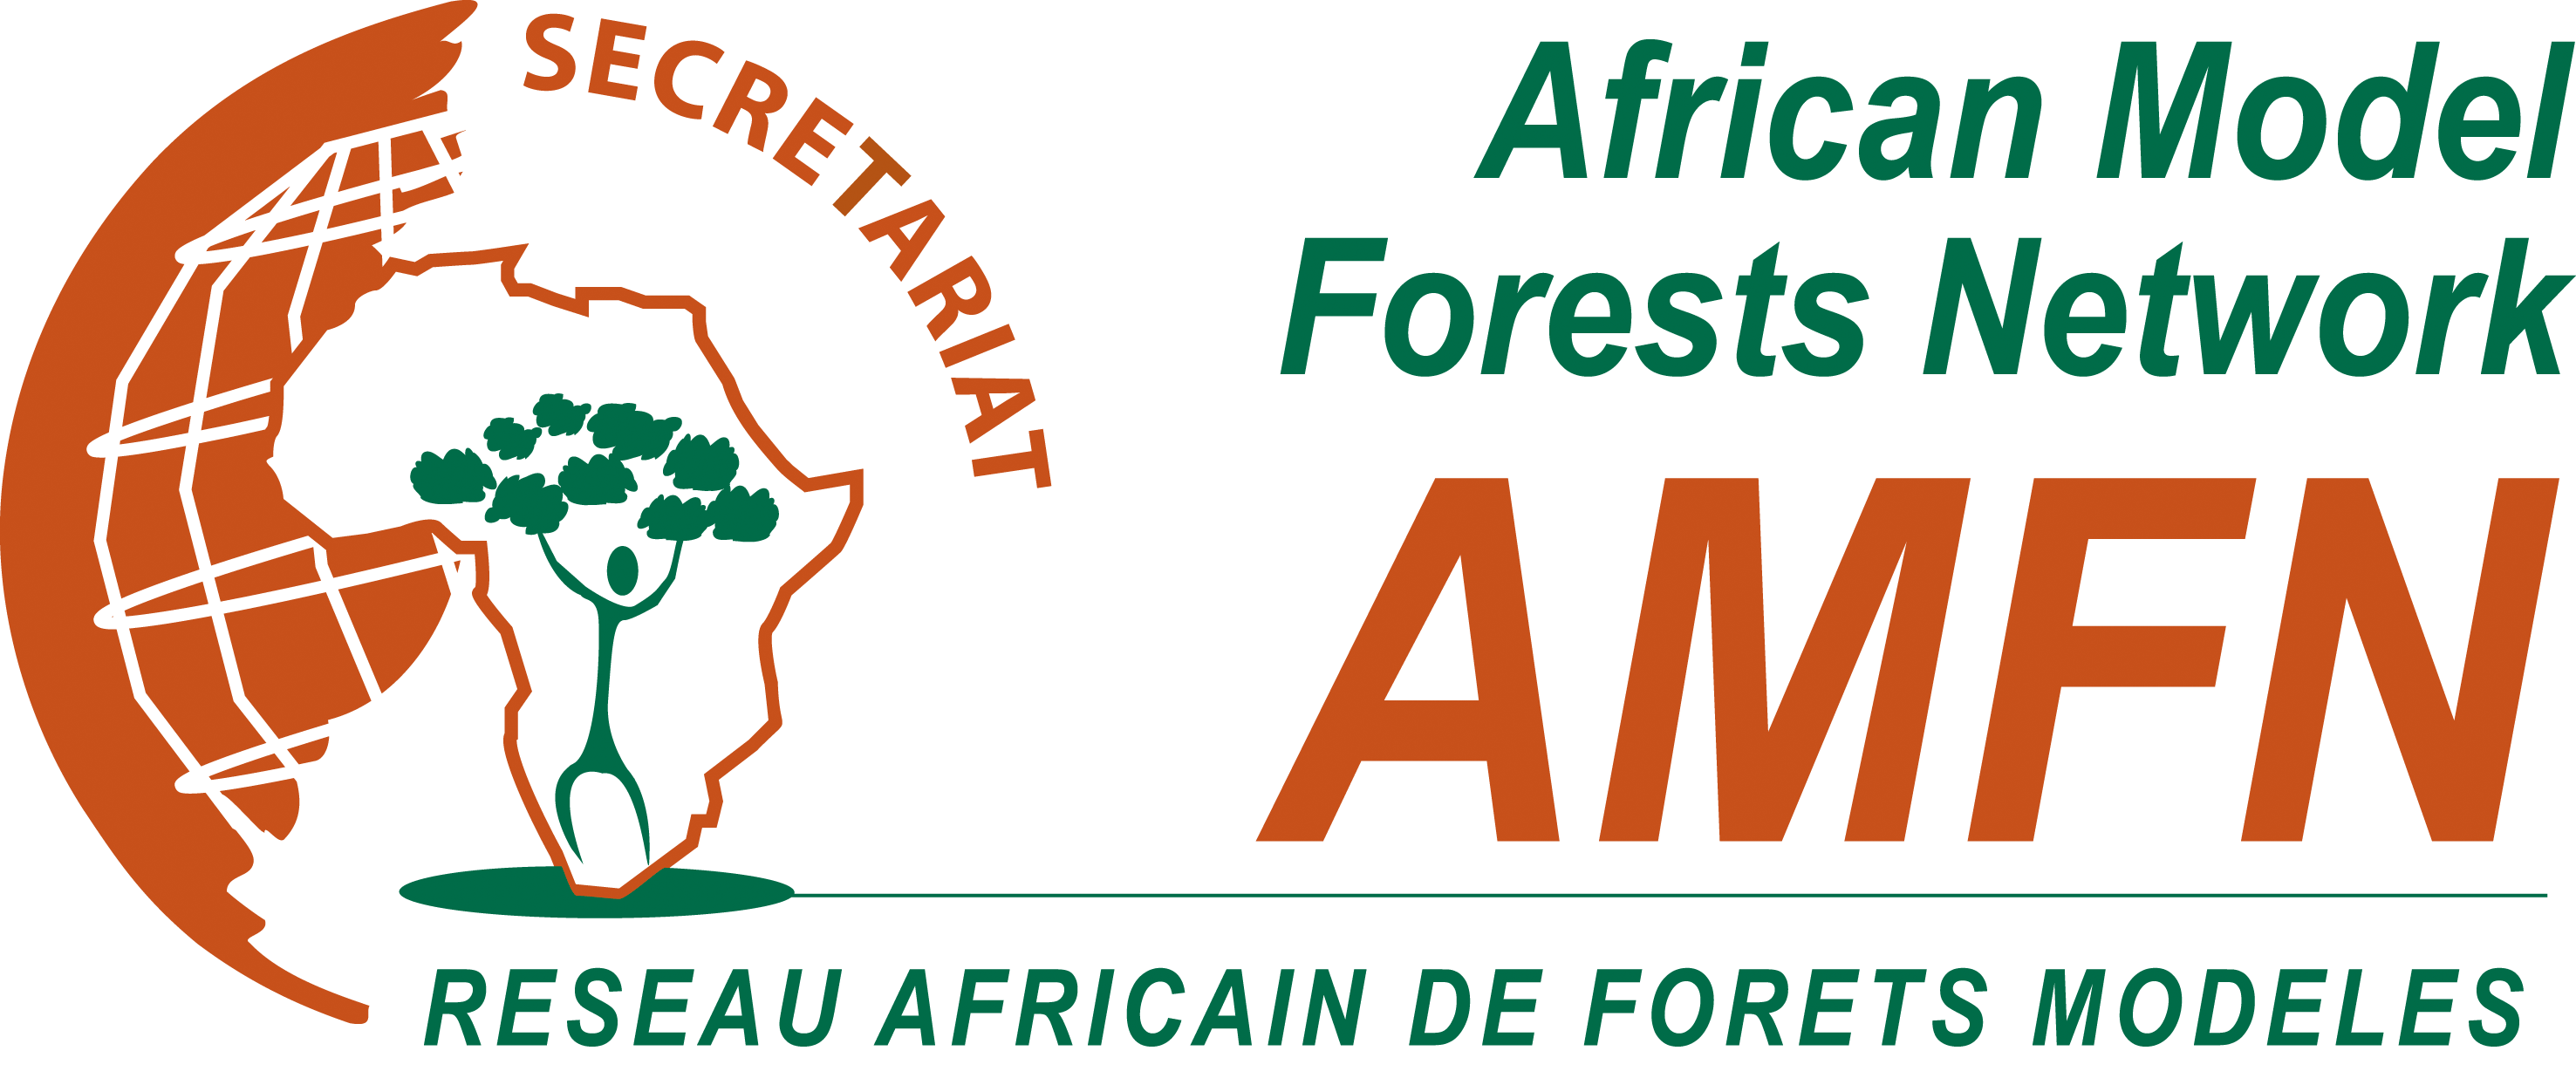 African Model Forests Network